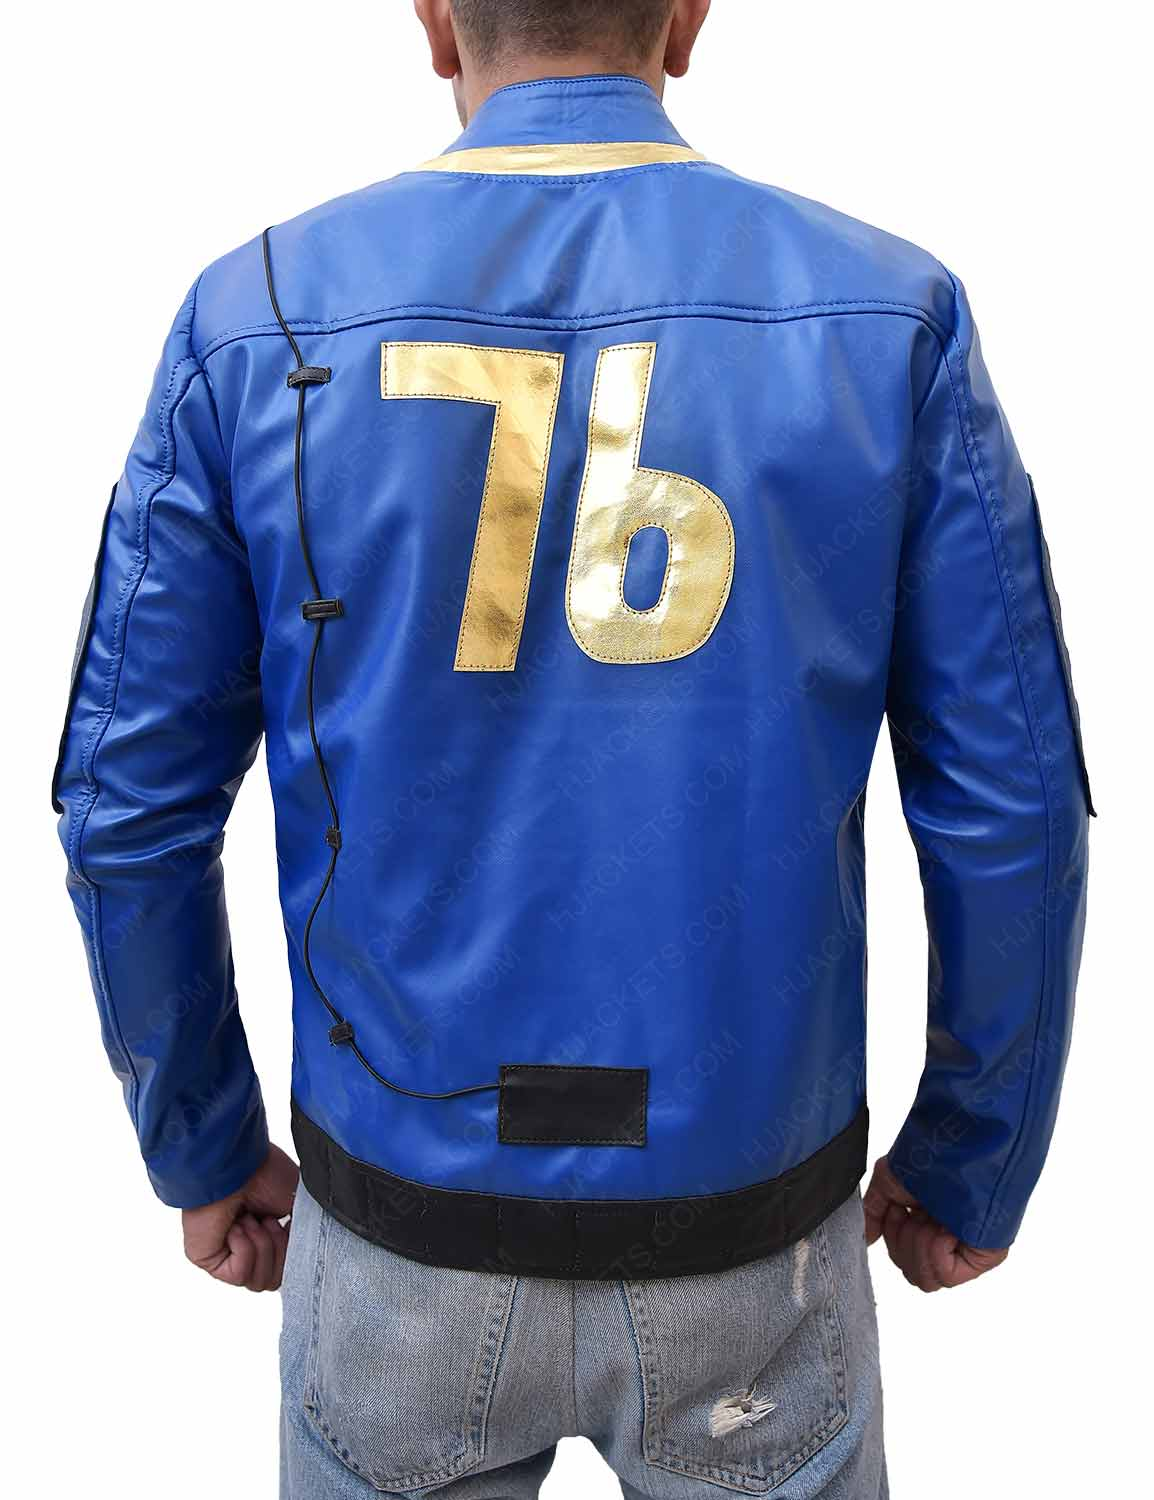 Buy Fallout 76 Jacket For Sale | Hjackets